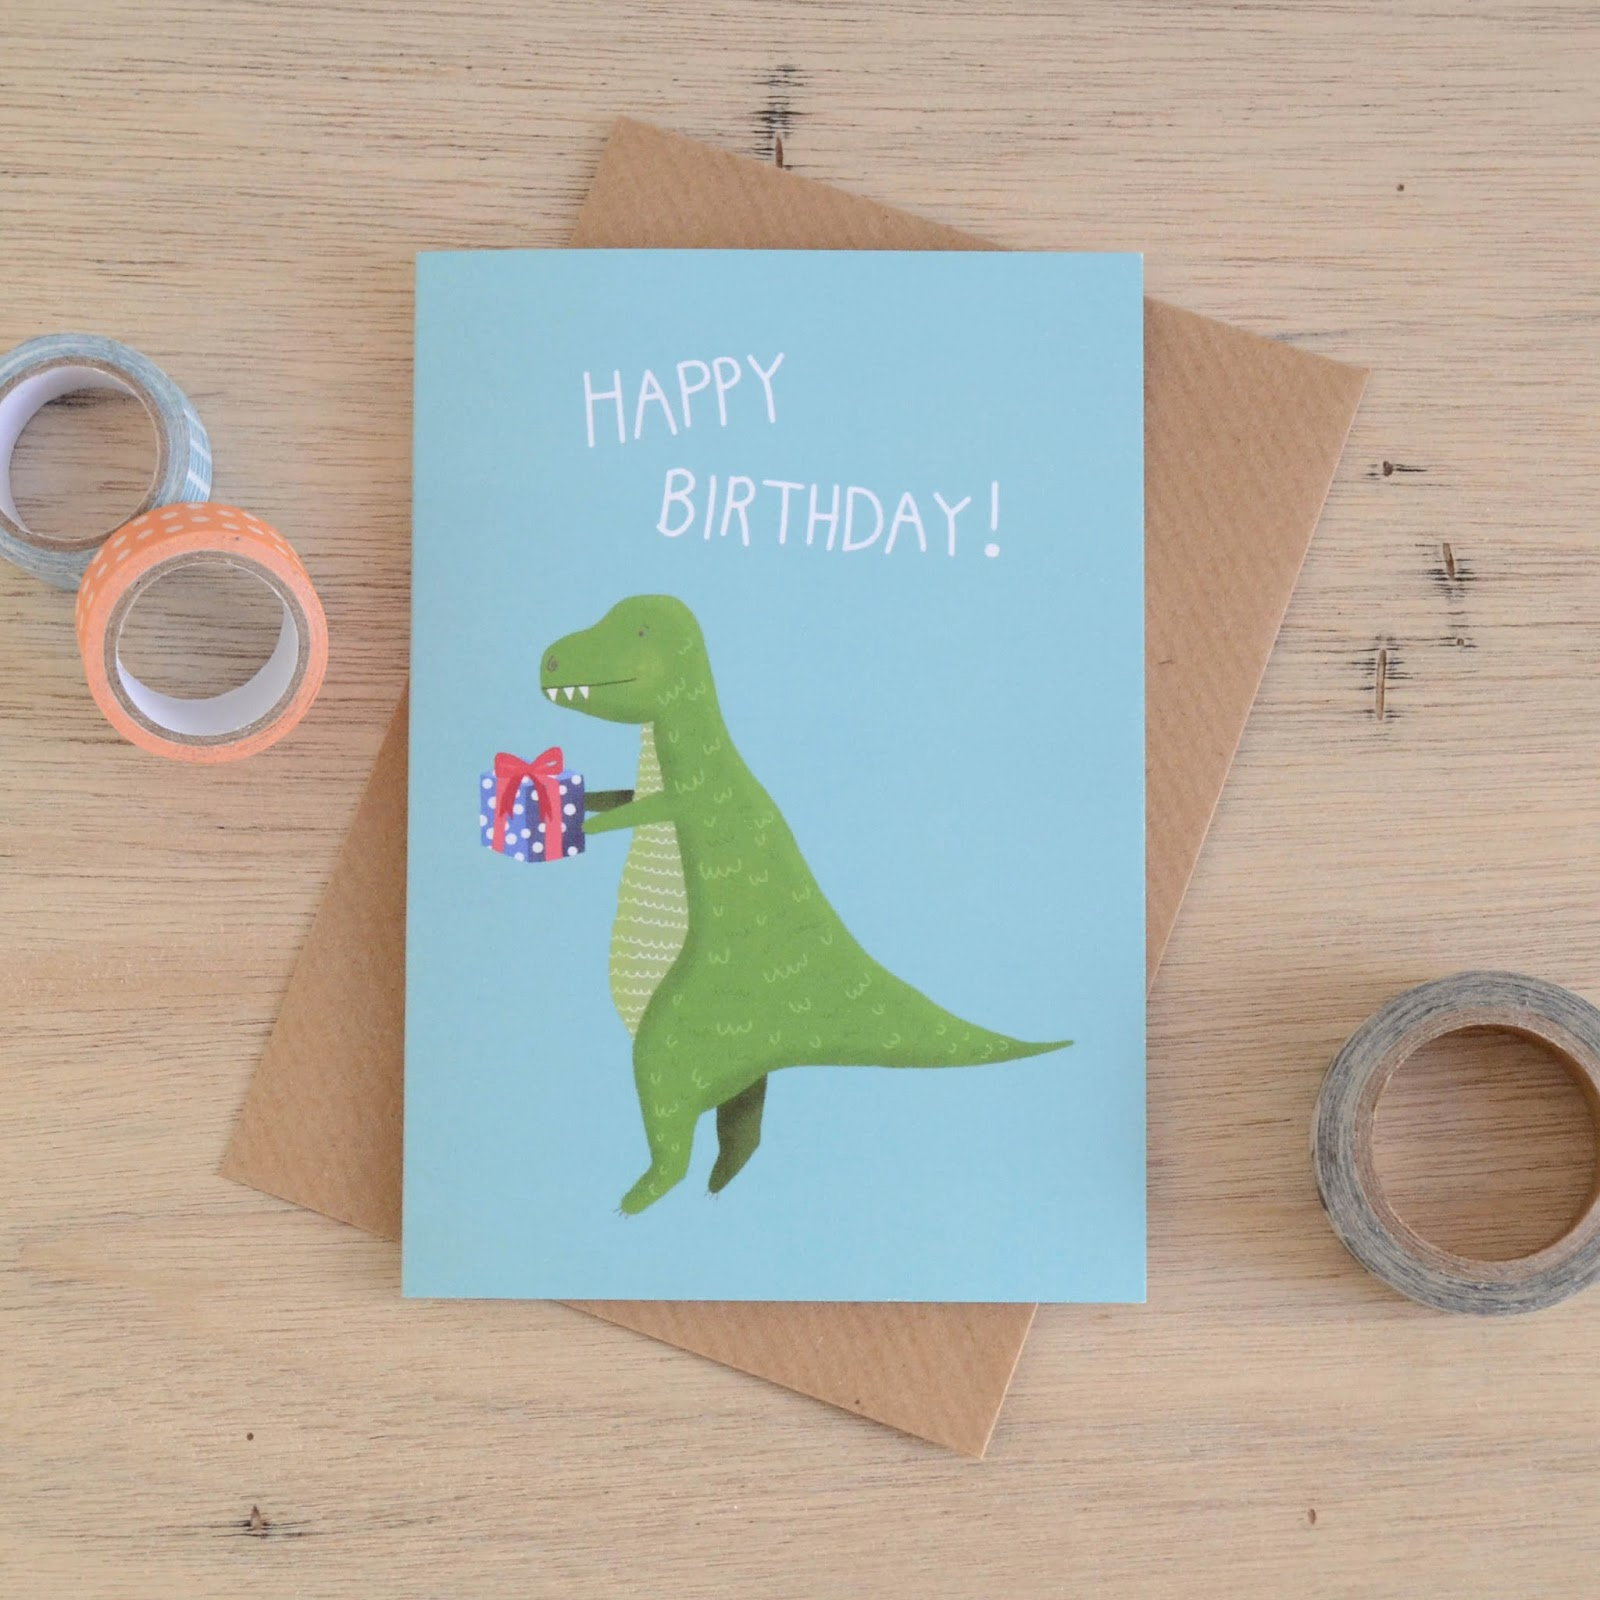 http://folksy.com/items/5725591-T-Rex-Birthday-Card